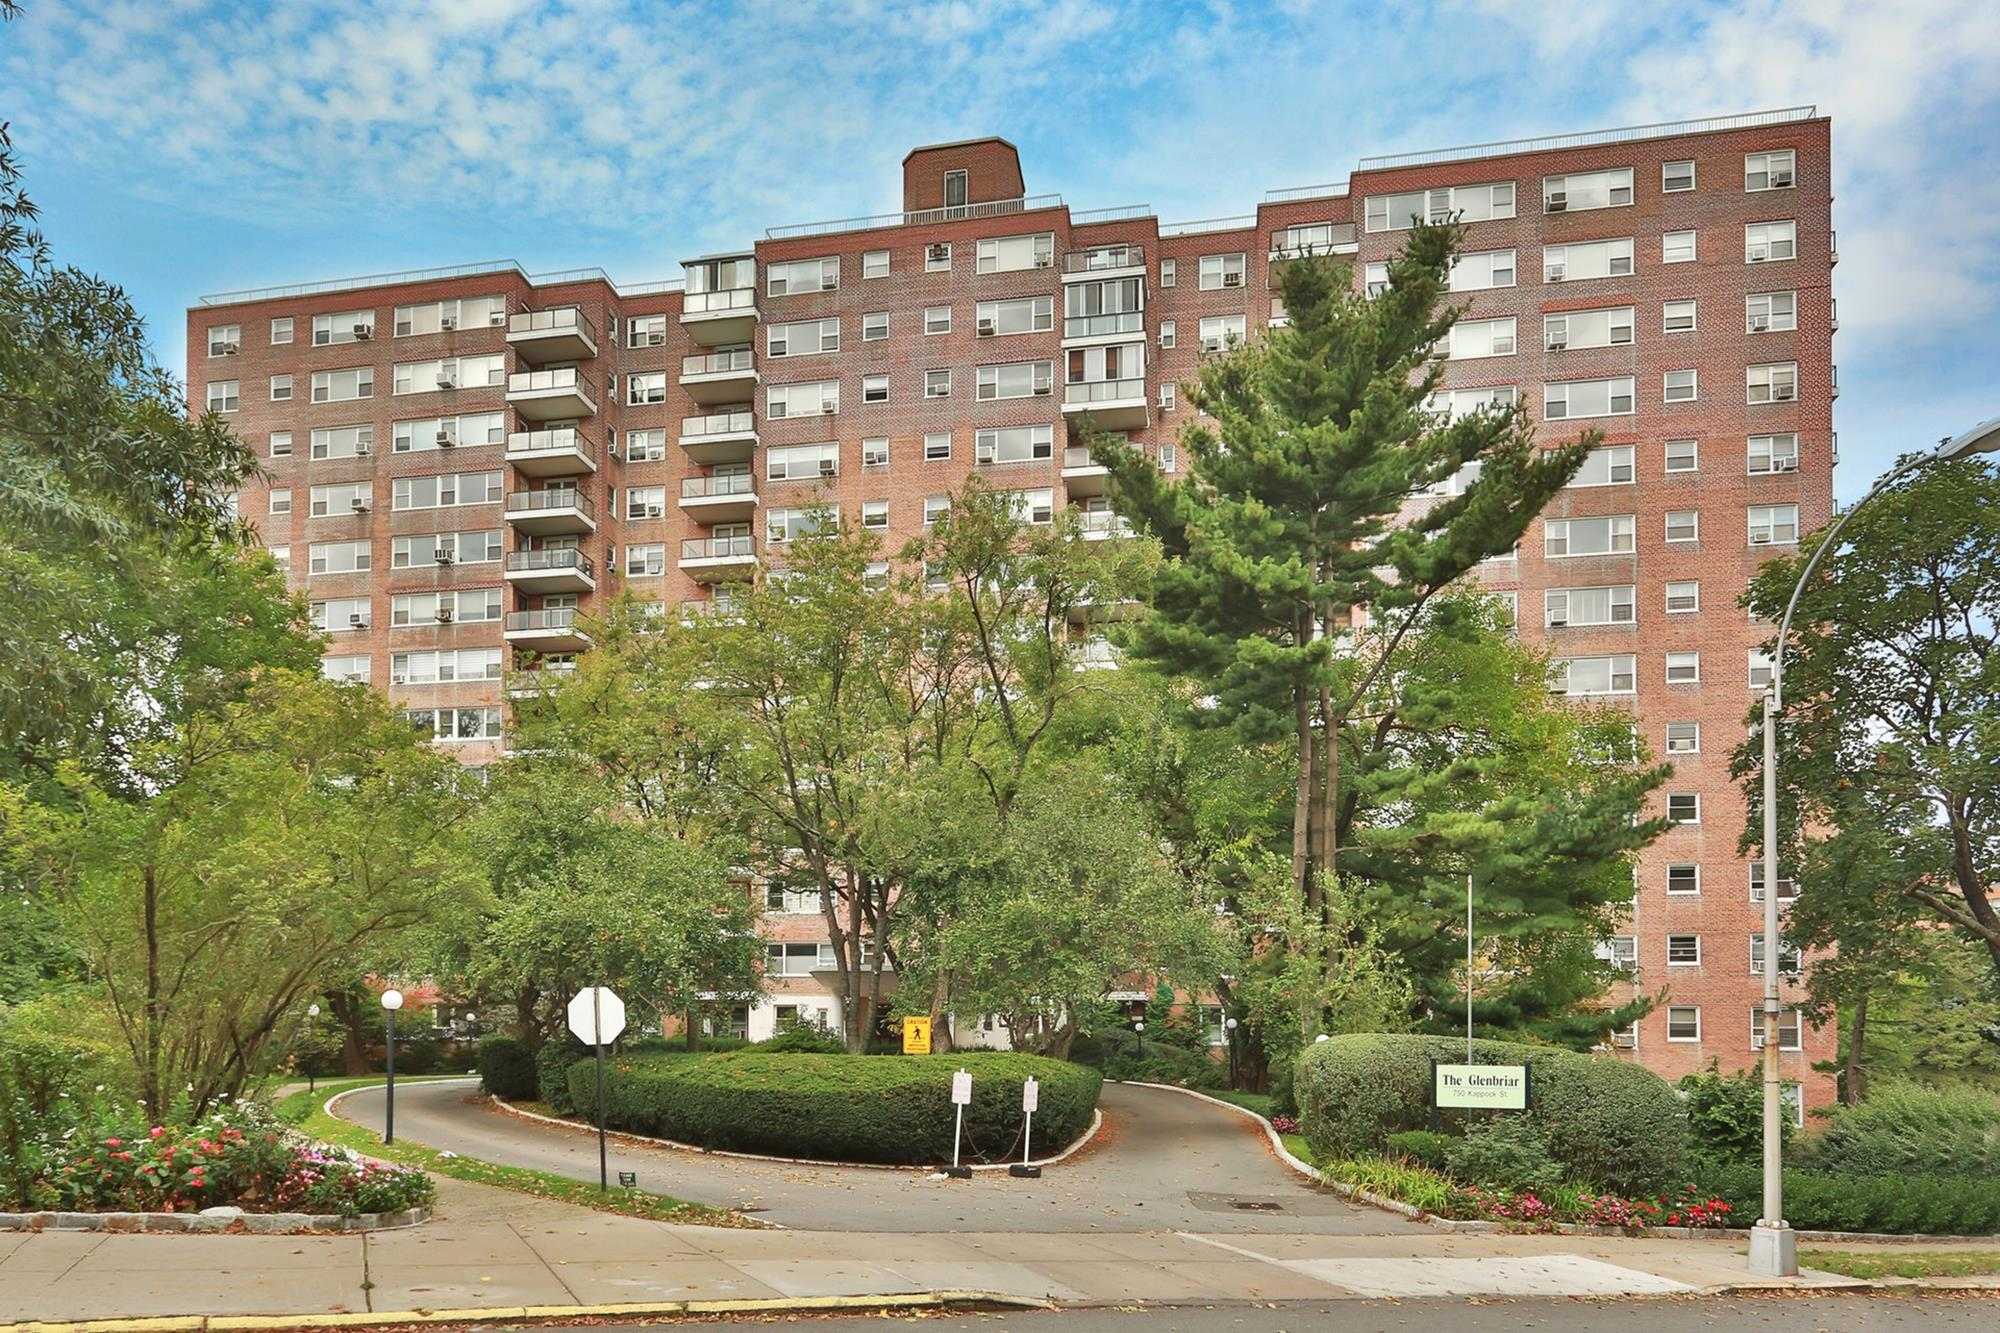 SOUTH RIVERDALE -- : Huge 3-Bd. Co-op w/ River Views, Balcony, Garage Space & 24-Hr. Doormen at 750 Kappock St.